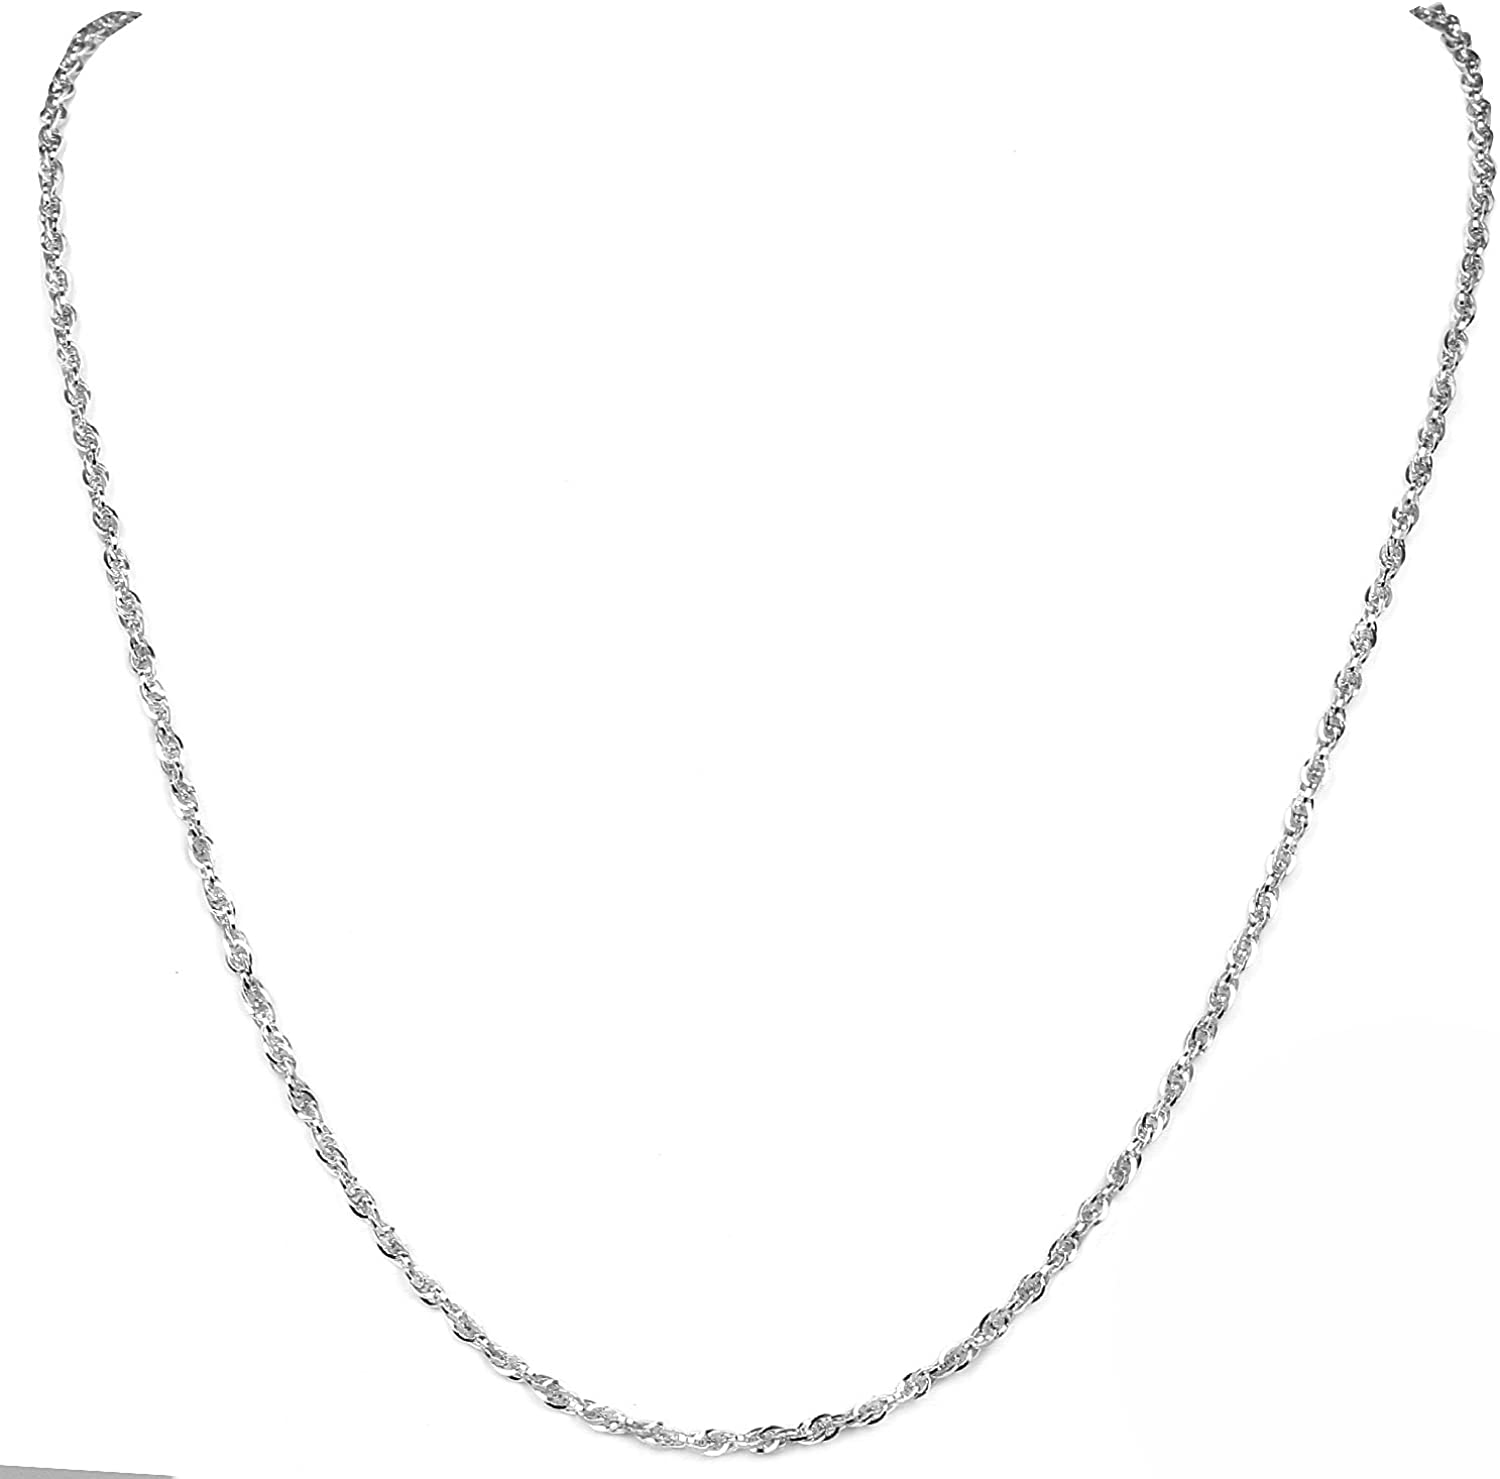 925 Sterling Silver Italian Made Necklace 3.0mm Round Wheat Chain 18 20 22 24 26 28 Italy Necklace Diamond Cut Rope for Women and Men